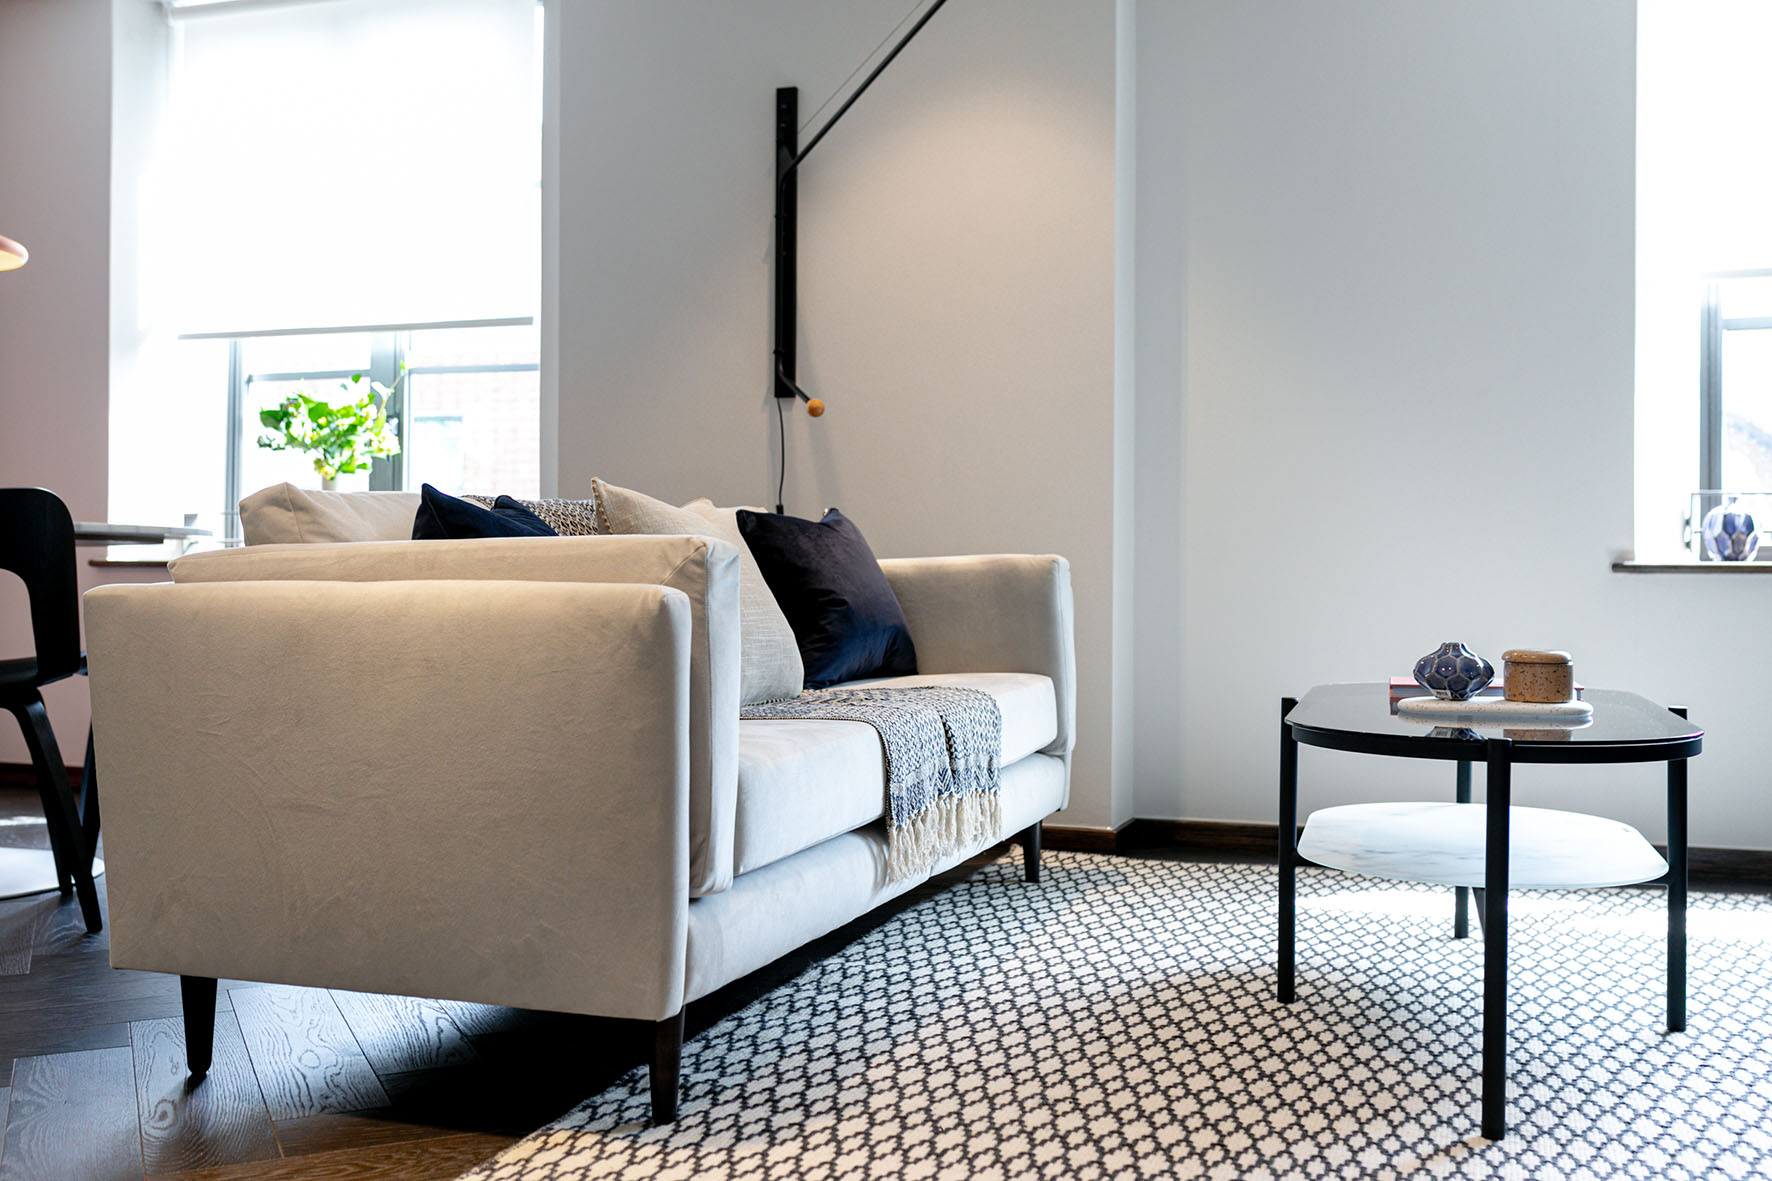 Lovelydays luxury service apartment rental - London - Soho - Noel Street VII - Lovelysuite - 1 bedrooms - 1 bathrooms - Comfortable sofa - 4ca3ff8088a8 - Lovelydays